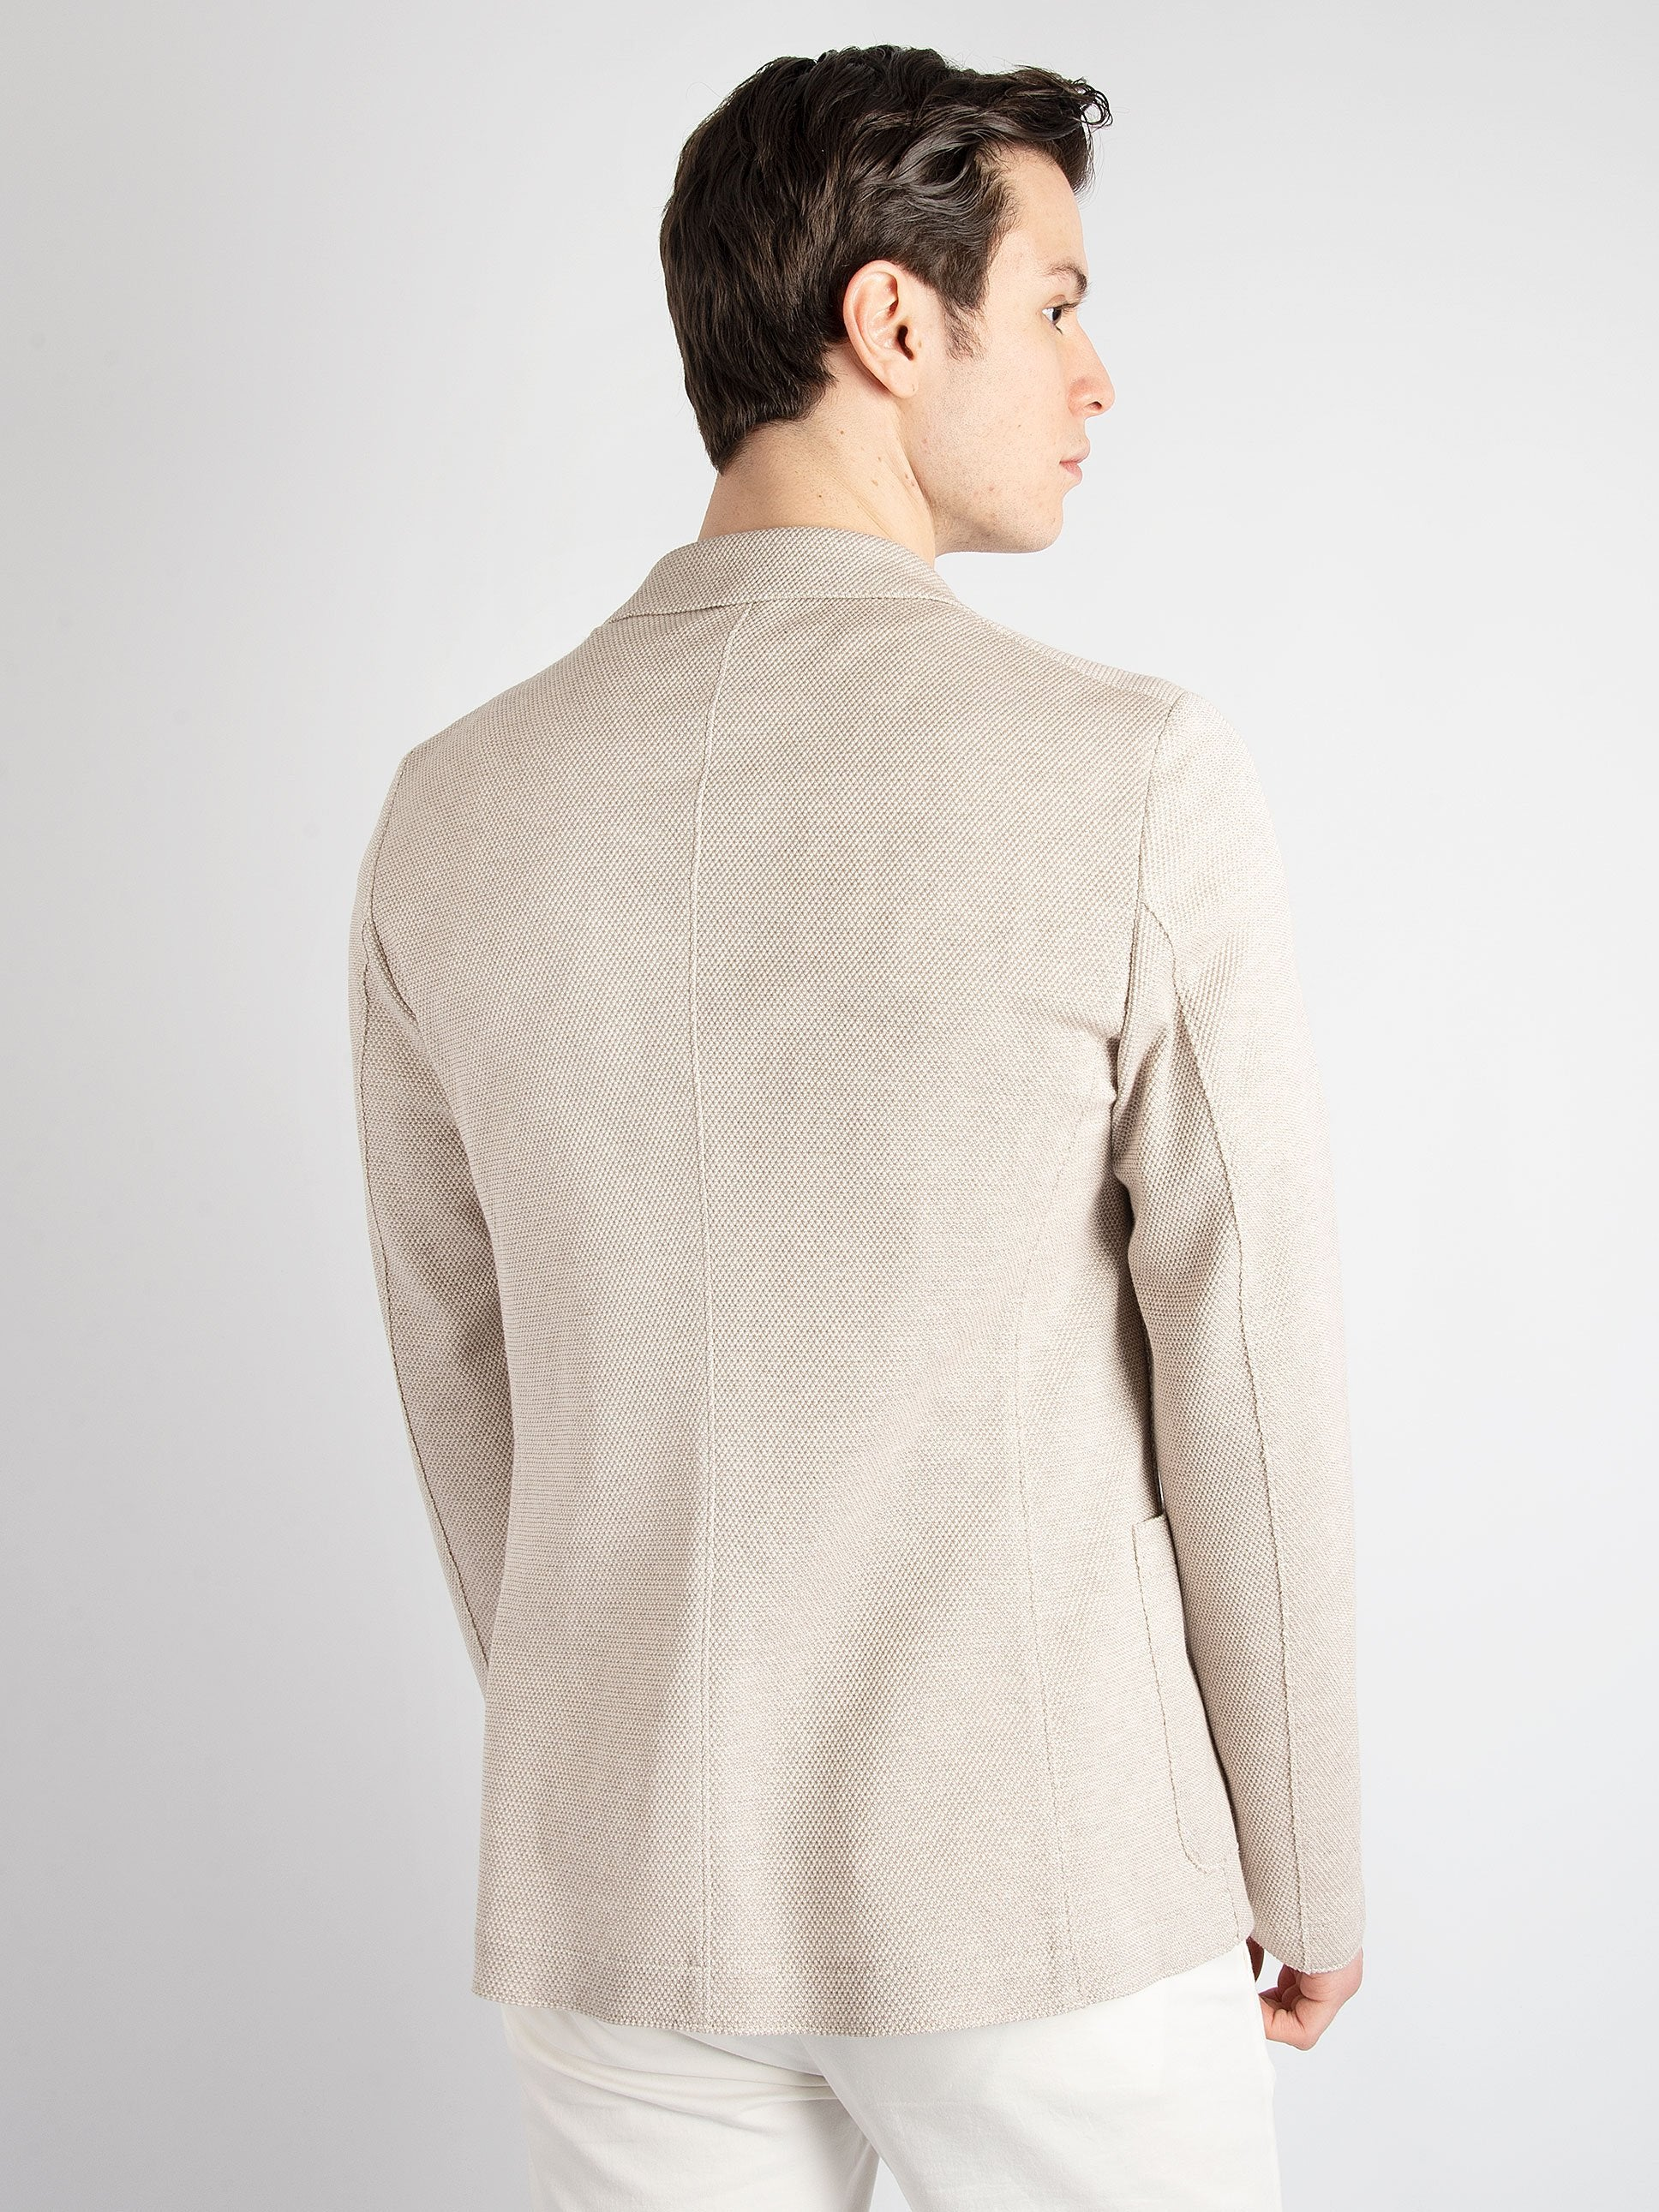 Giacca Jersey -  Beige